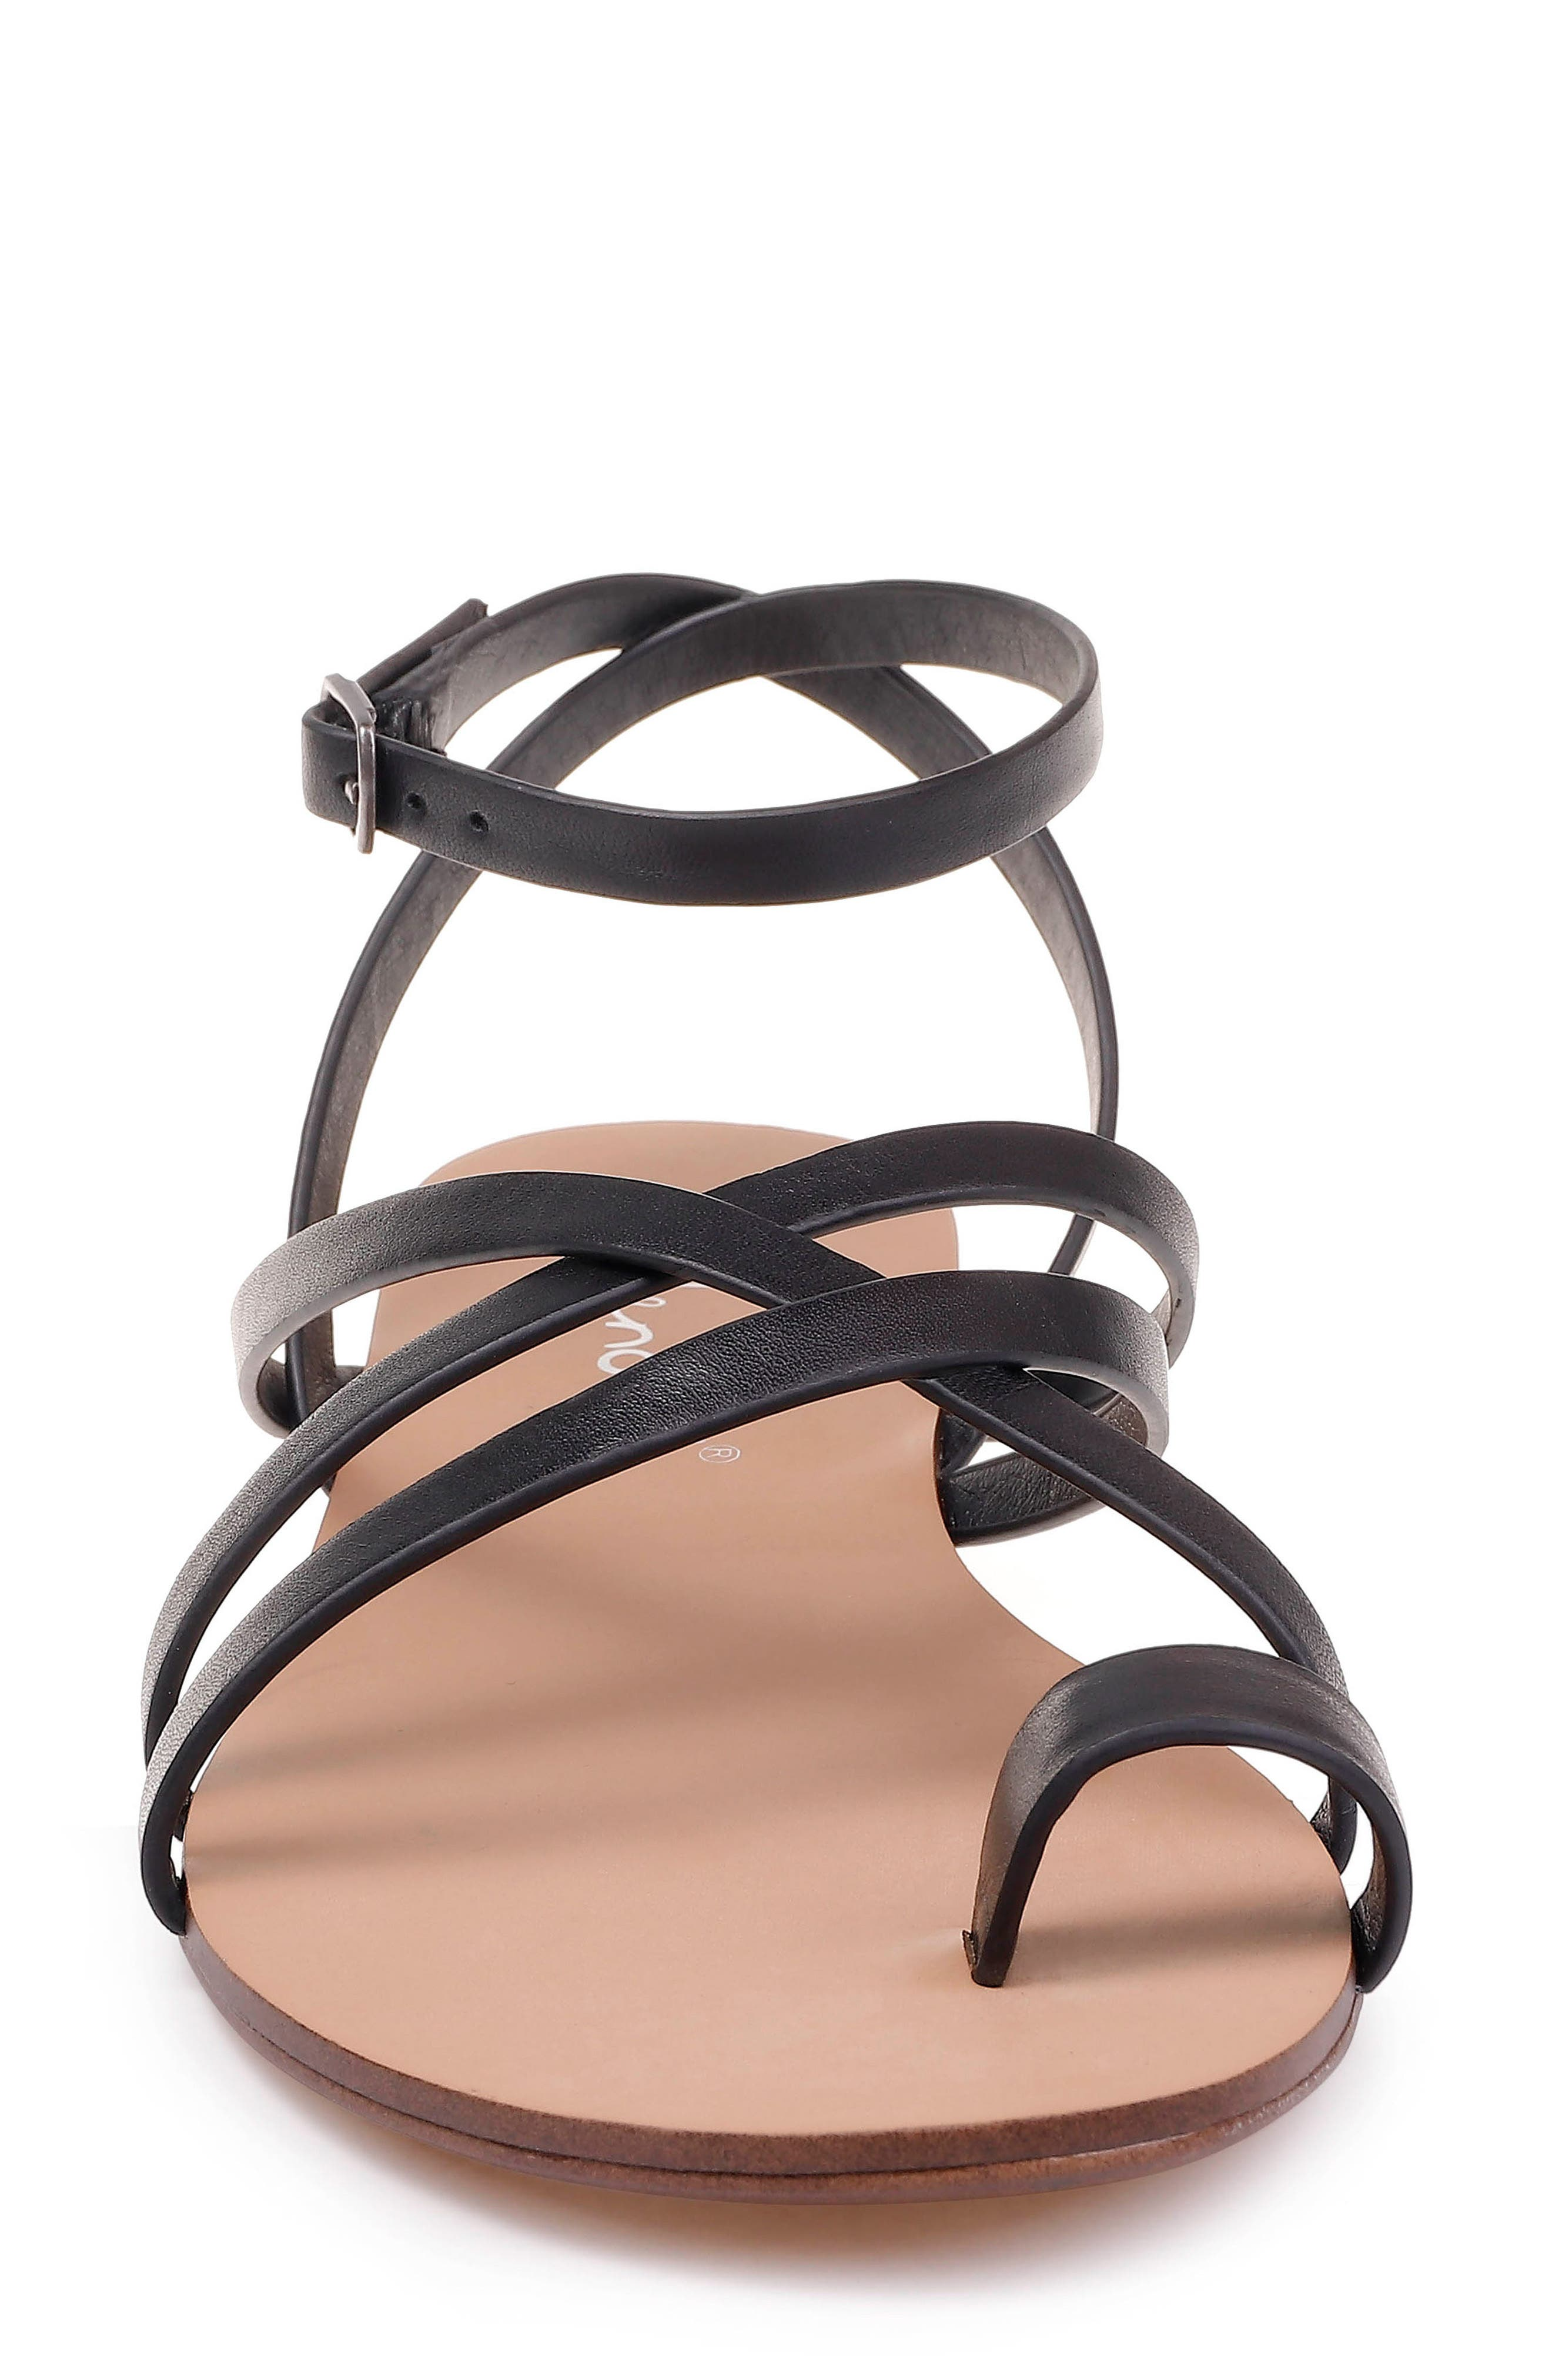 SPLENDID, Sully Strappy Toe Loop Sandal, Alternate thumbnail 4, color, BLACK LEATHER